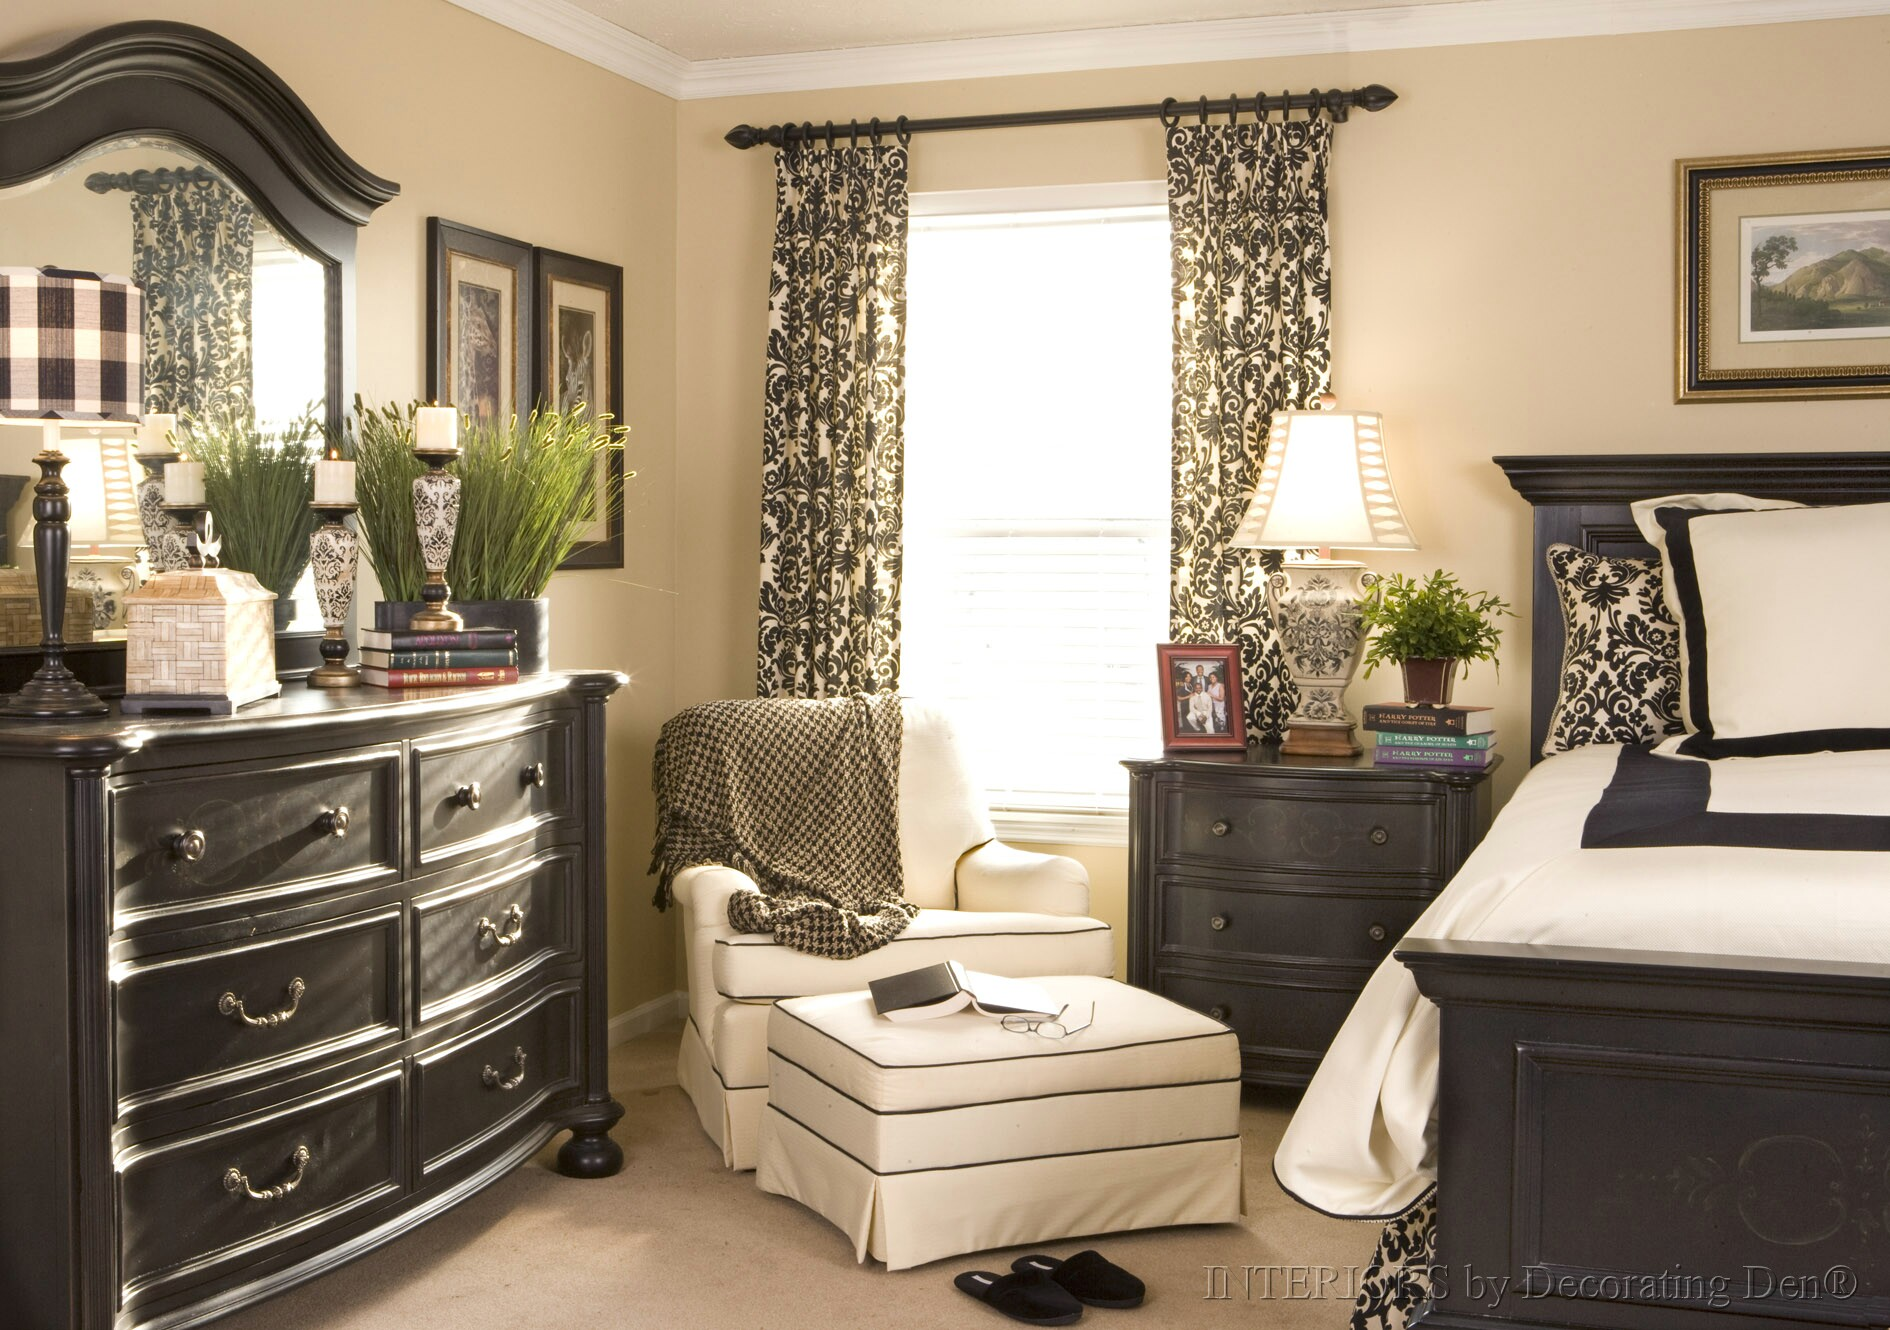 Home Design Roosa: Master Bedroom At The Front Of The House